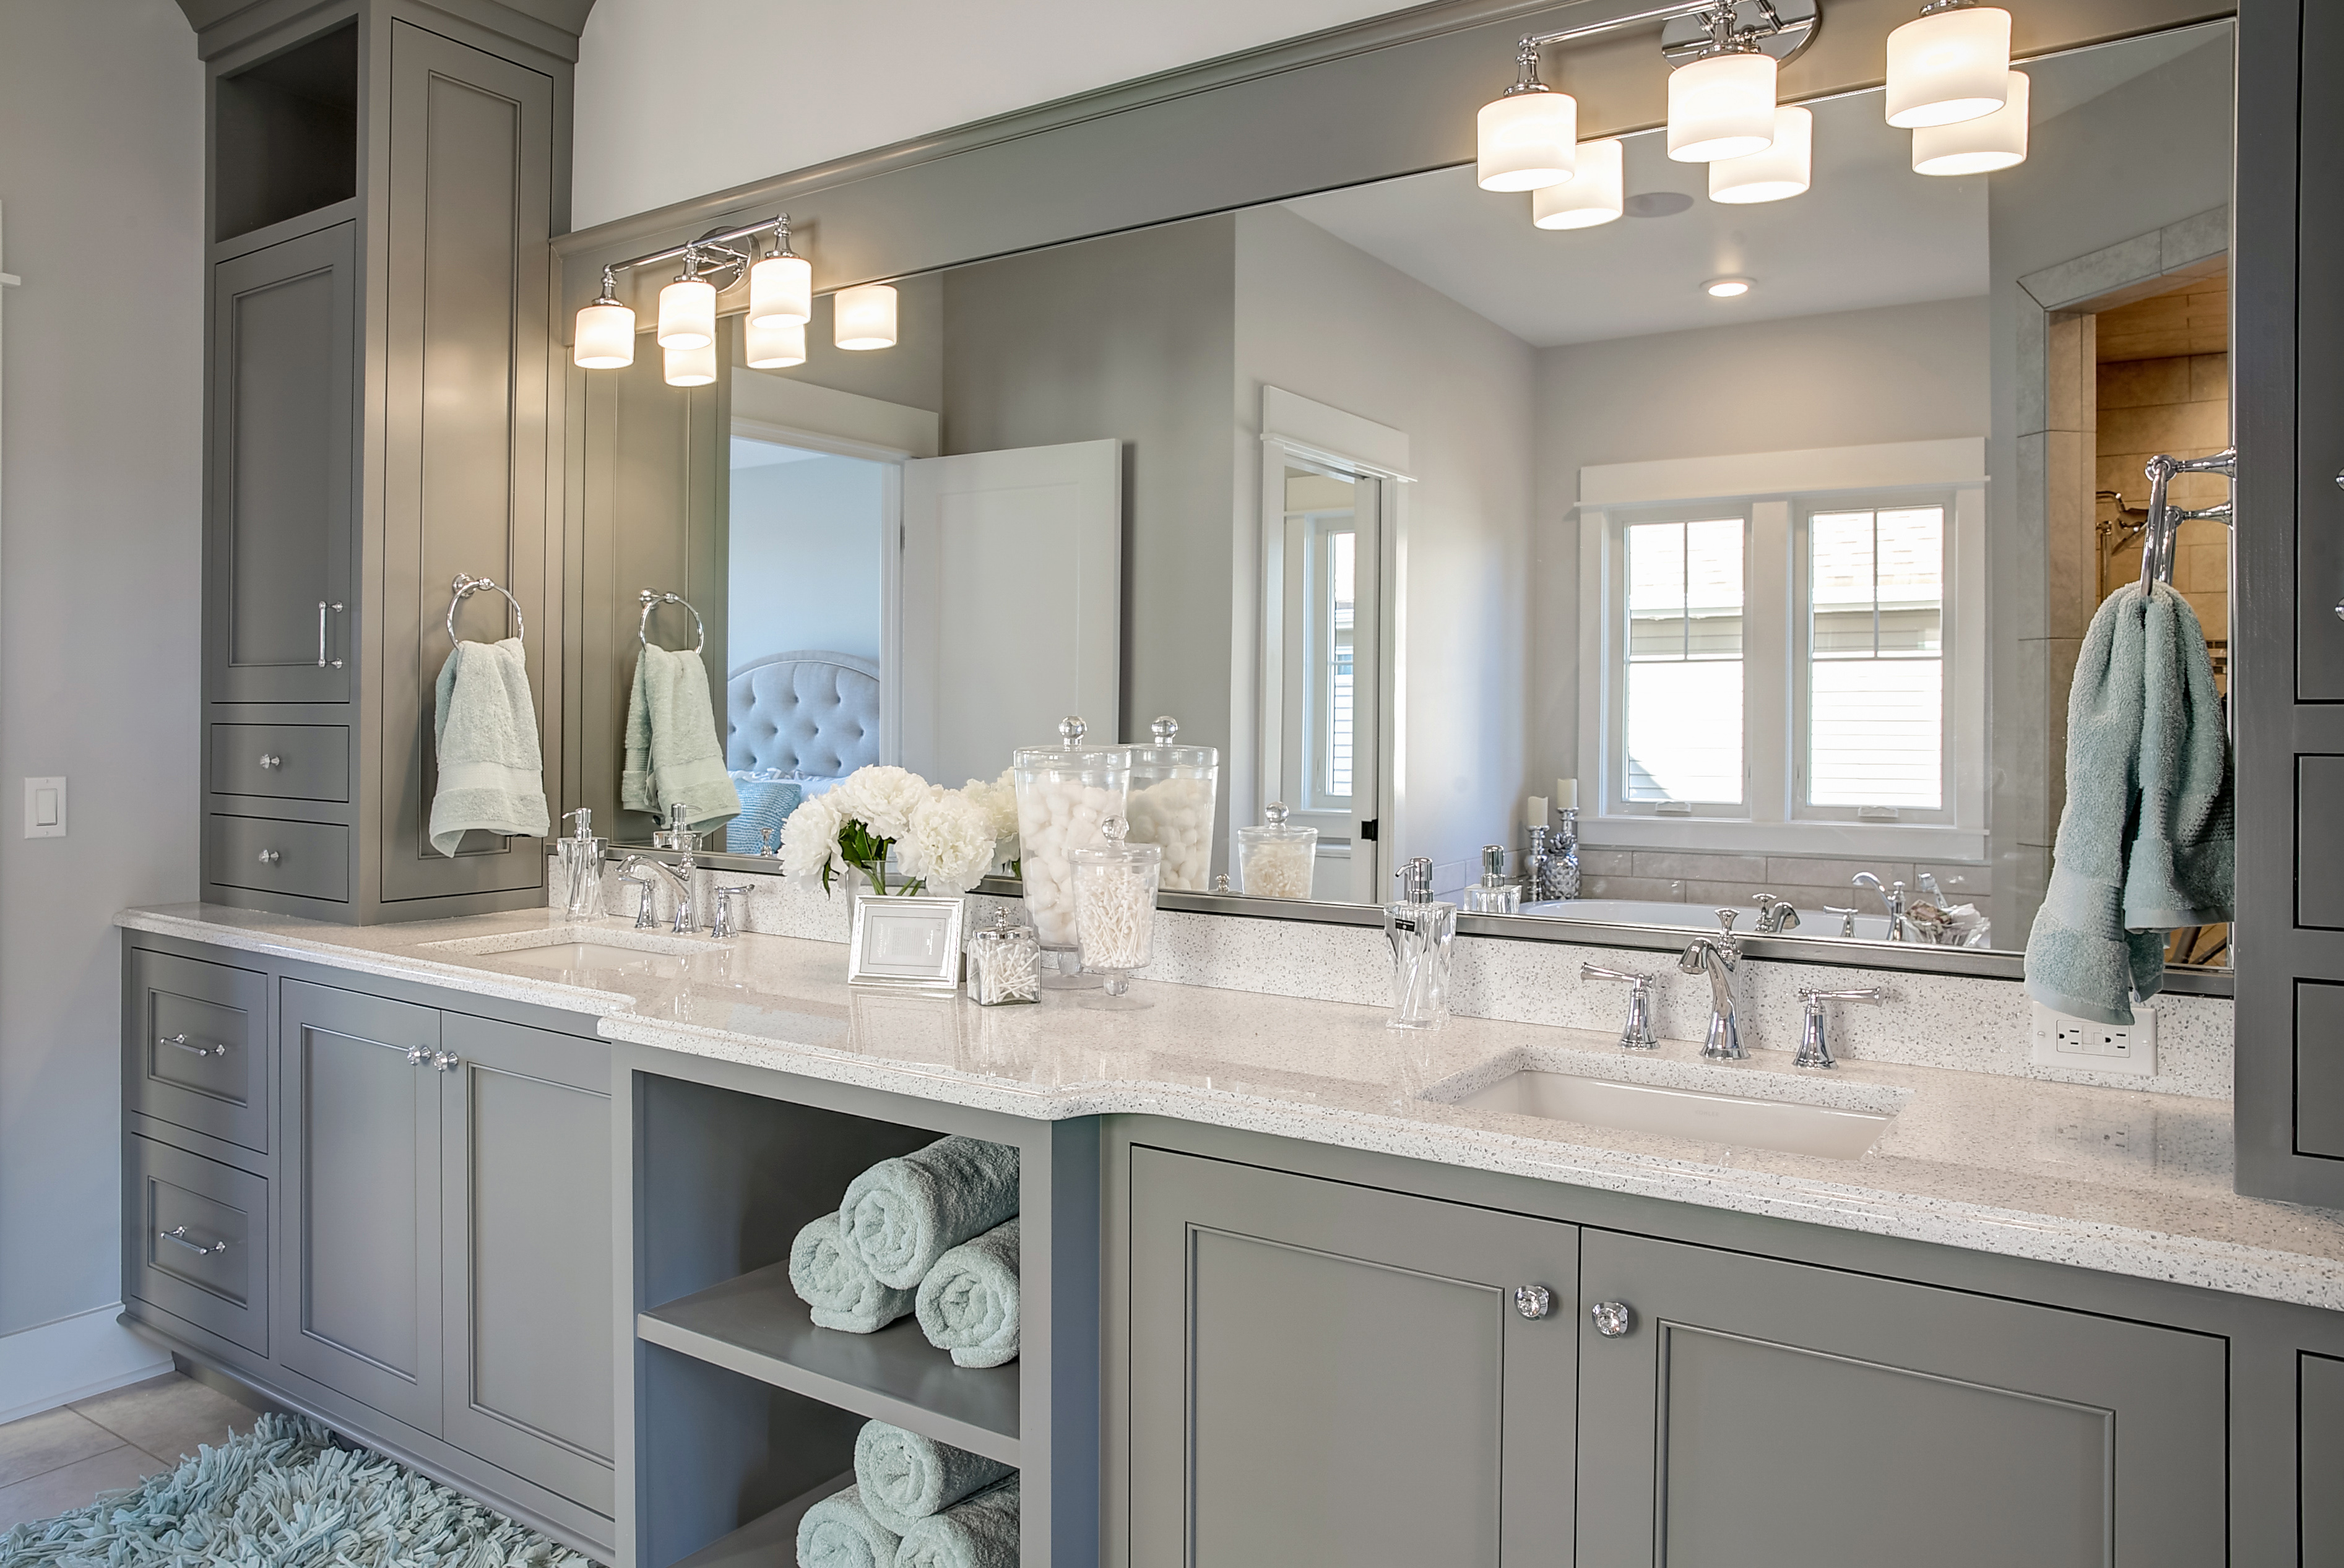 CVI Design Can Help With Space Planning, Bathroom Cabinet Design, Bathroom  Tile Design And Most ...